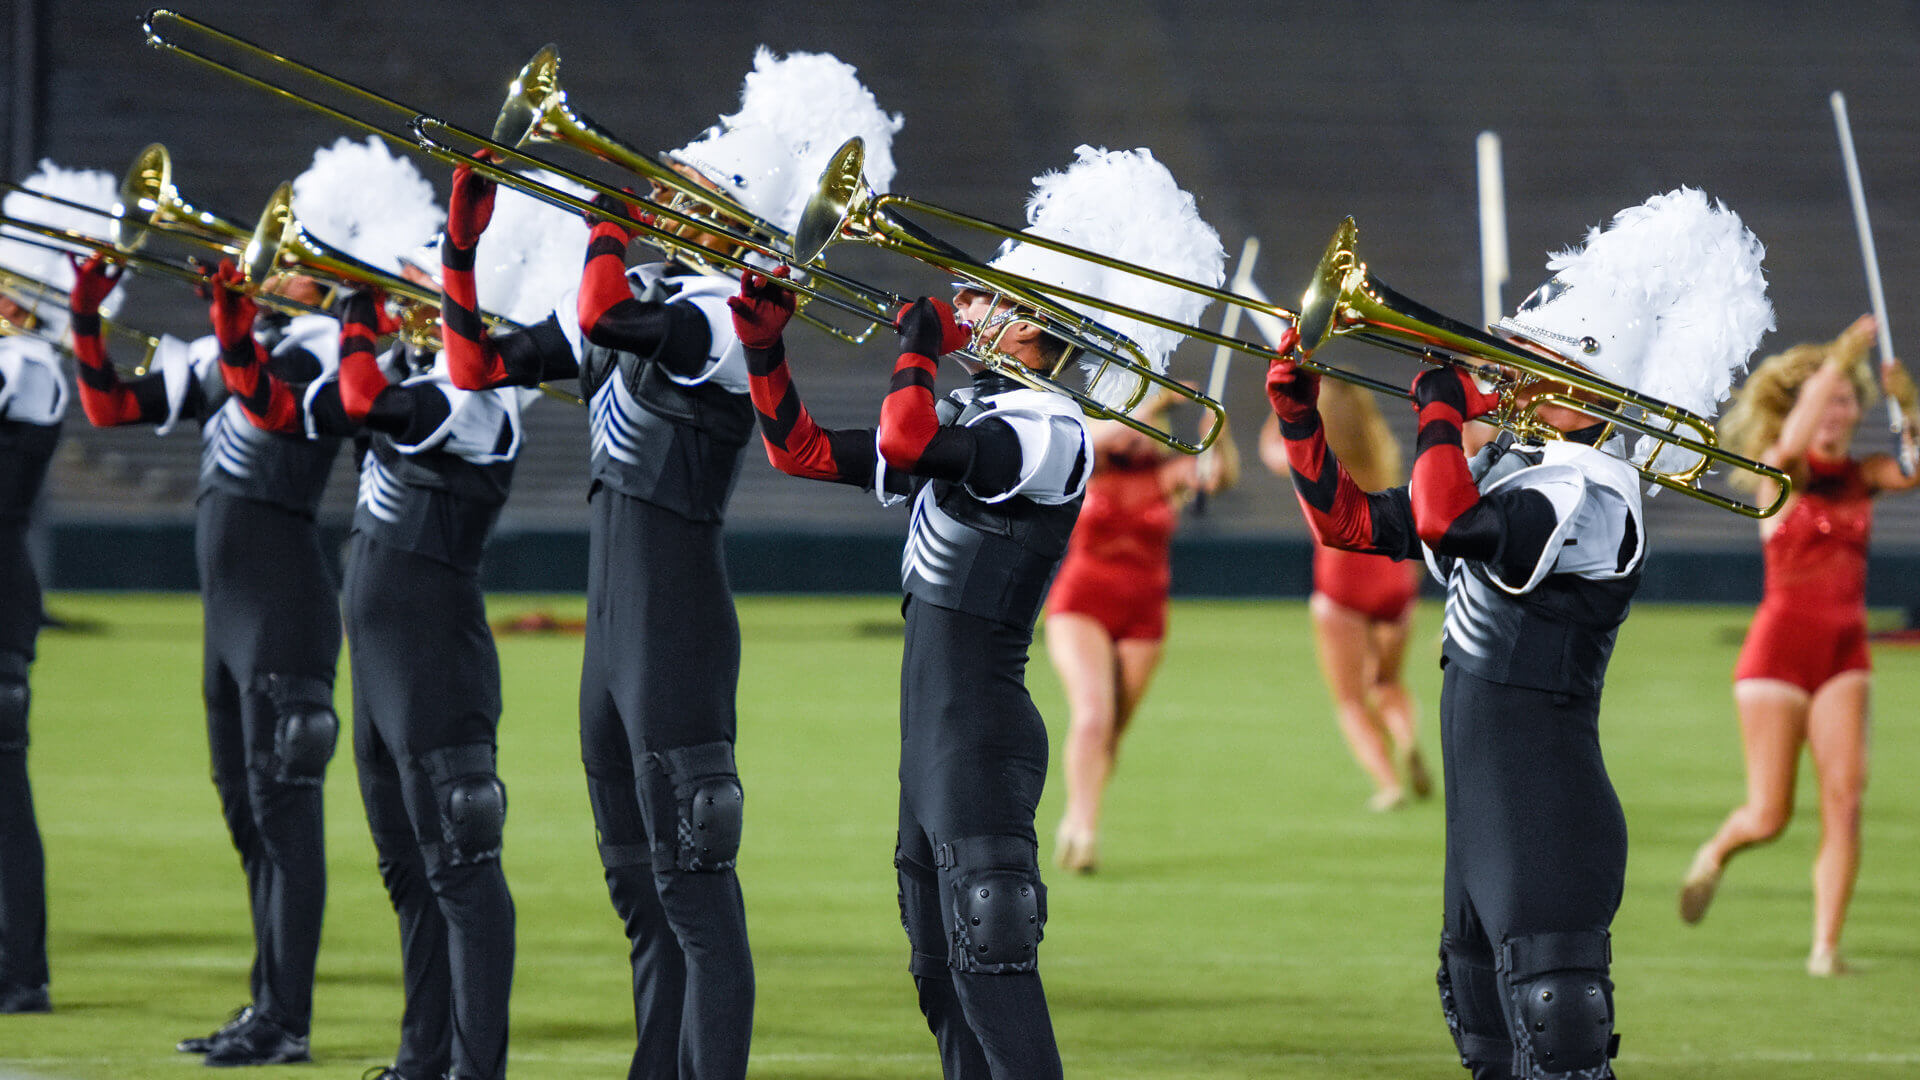 Field Pass Podcast: Drum corps is one big family